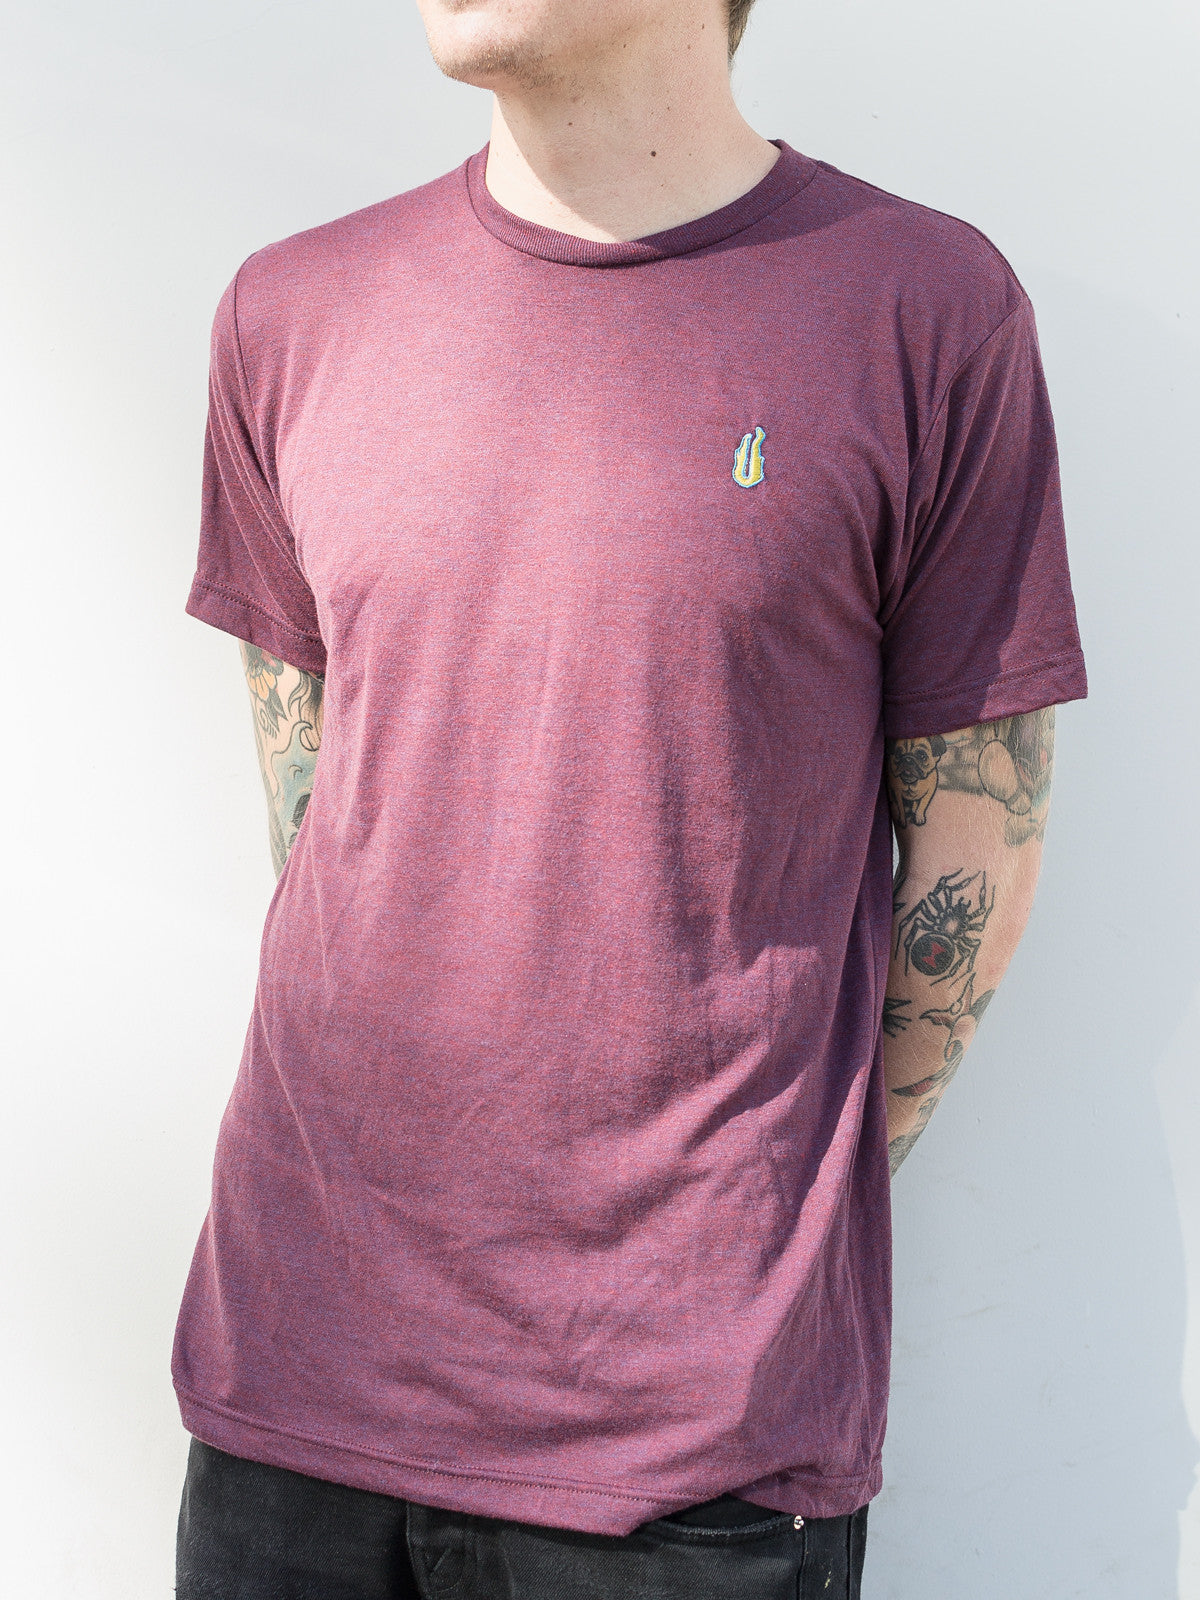 August Burns Red - Embroidered Logo Tee - MerchLimited - 1